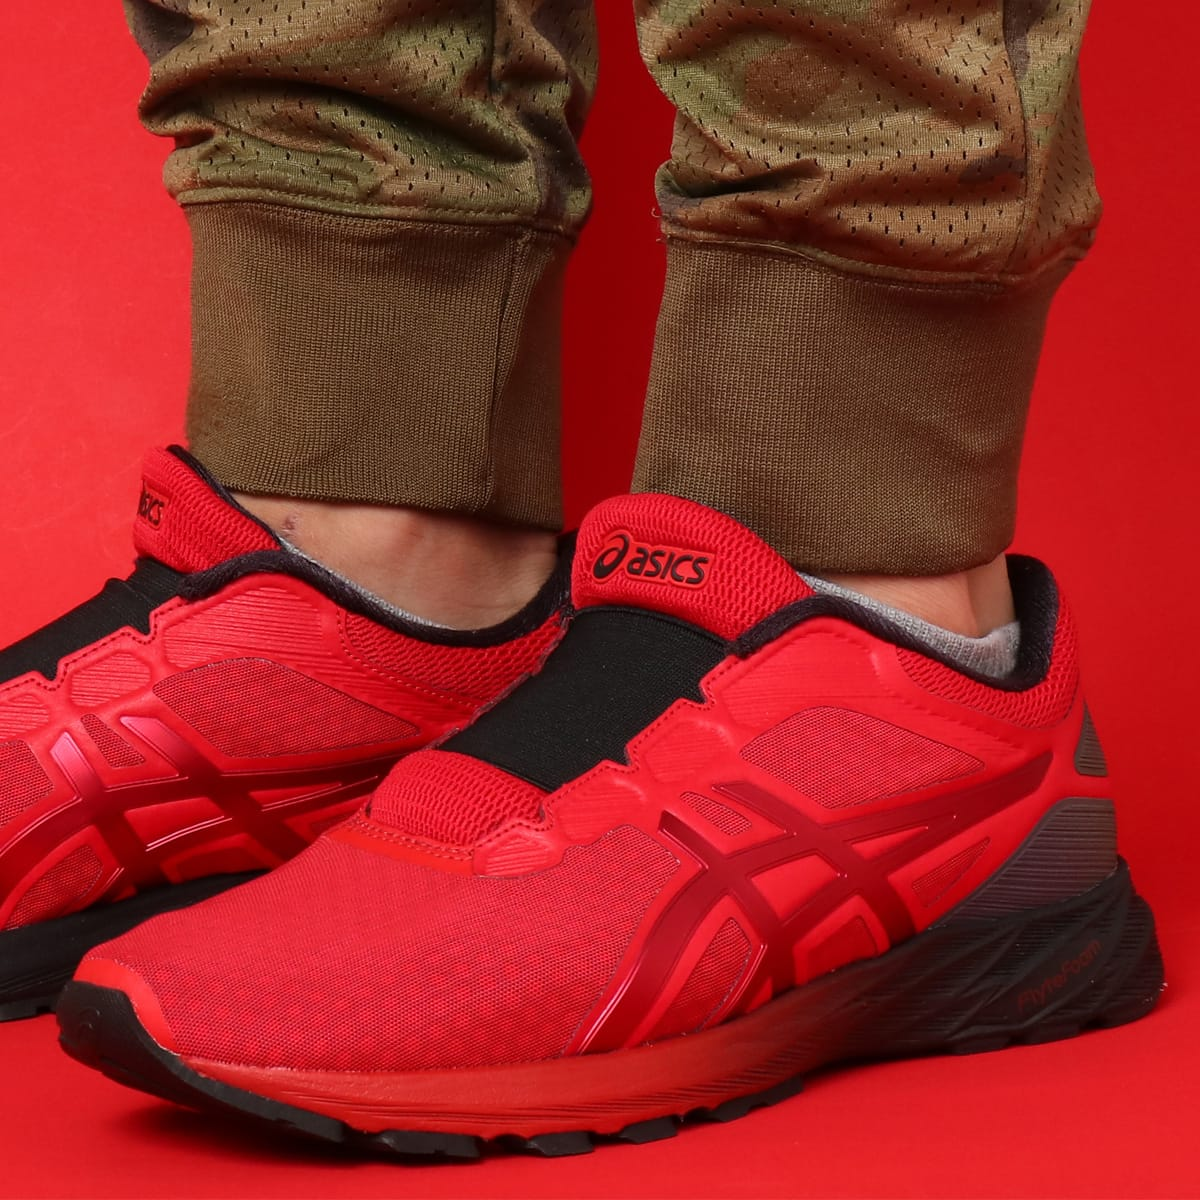 save off ecbff 8a037 asics DynaFlyte 2 THE INCREDIBLES RED